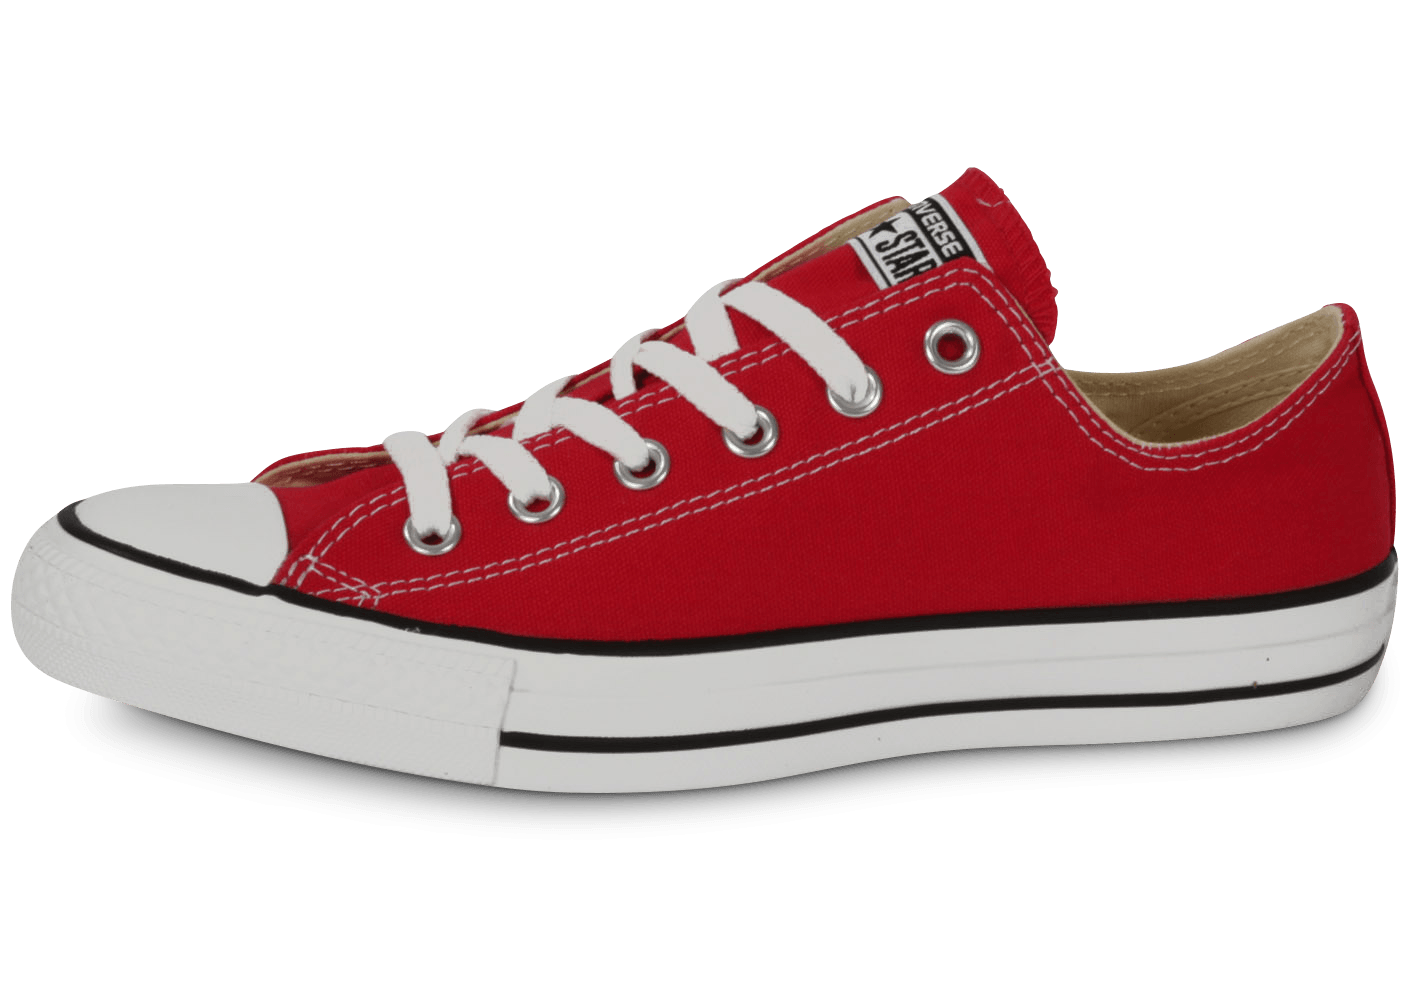 Star Homme Chaussures Baskets Low Chuck Rouge Taylor Converse All CnpqSctS